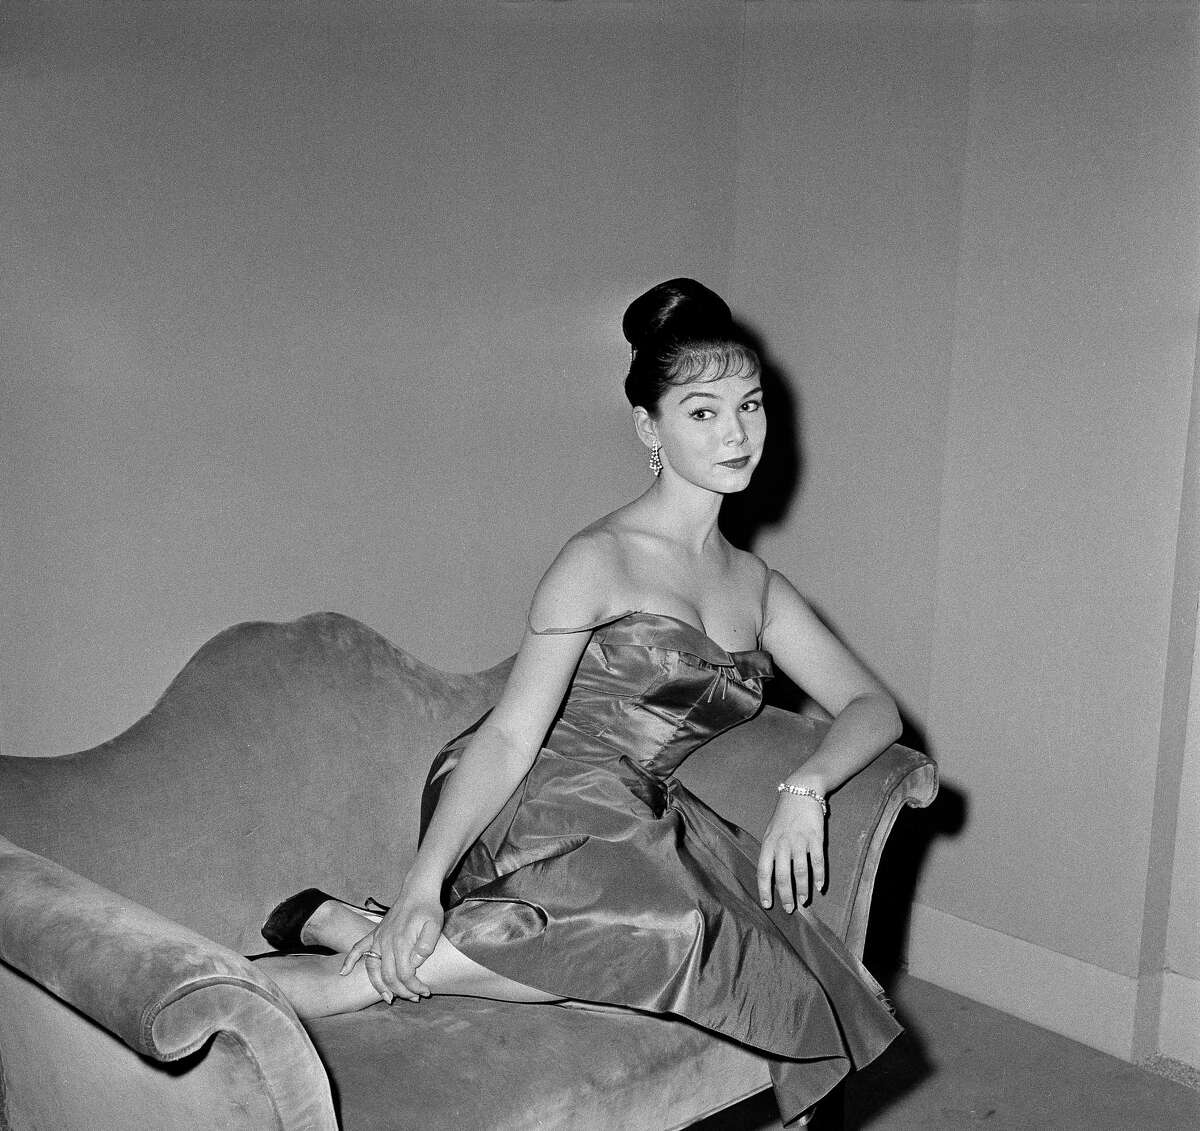 """In this July 11, 1959, file photo, actress Yvonne Craig poses on the set of """"The Gene Krupa Story,"""" in Los Angeles. Craig, who played the sexy, crime-fighting Batgirl in the 1960s TV hit """"Batman,"""" died Monday, Aug. 17, 2015. She was 78. Craig died in her Los Angeles home from complications from breast cancer."""